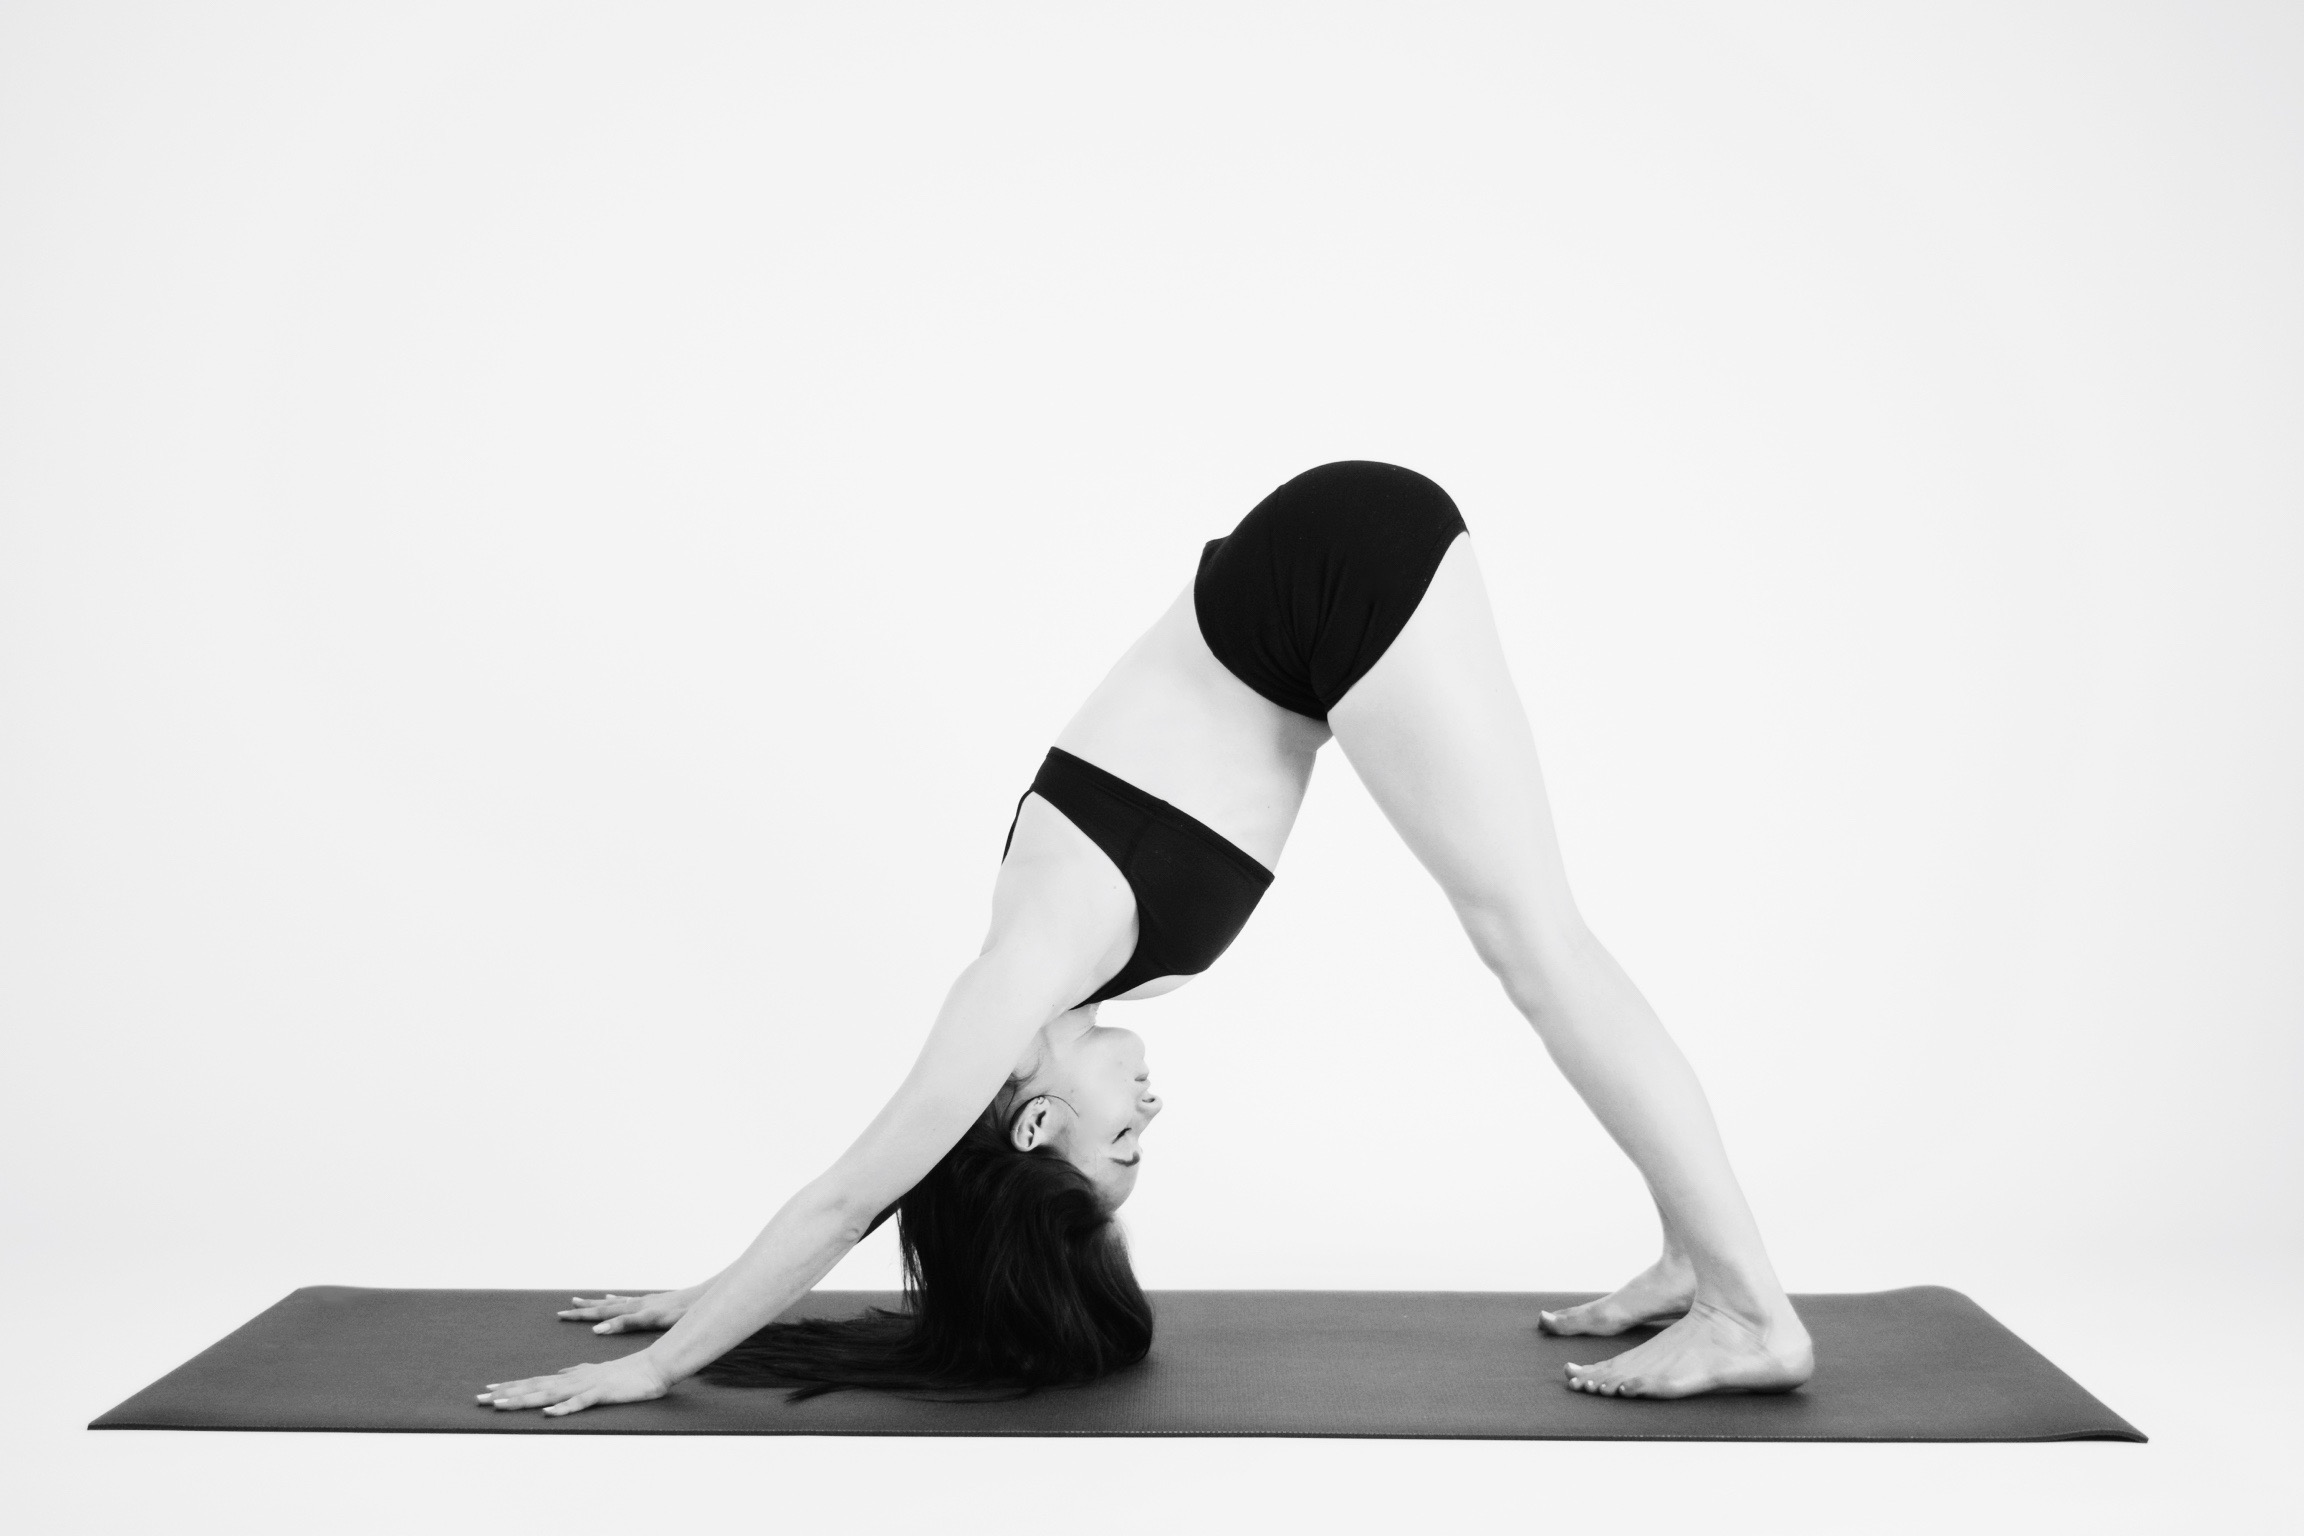 DOWNWARD FACING DOG  Tuck your toes under and lift your hips and your knees up and back to an upside down V shape. Spread your fingers wide and press your chest down towards your thighs. Try bending your knees, or maybe pedaling out from side to side.